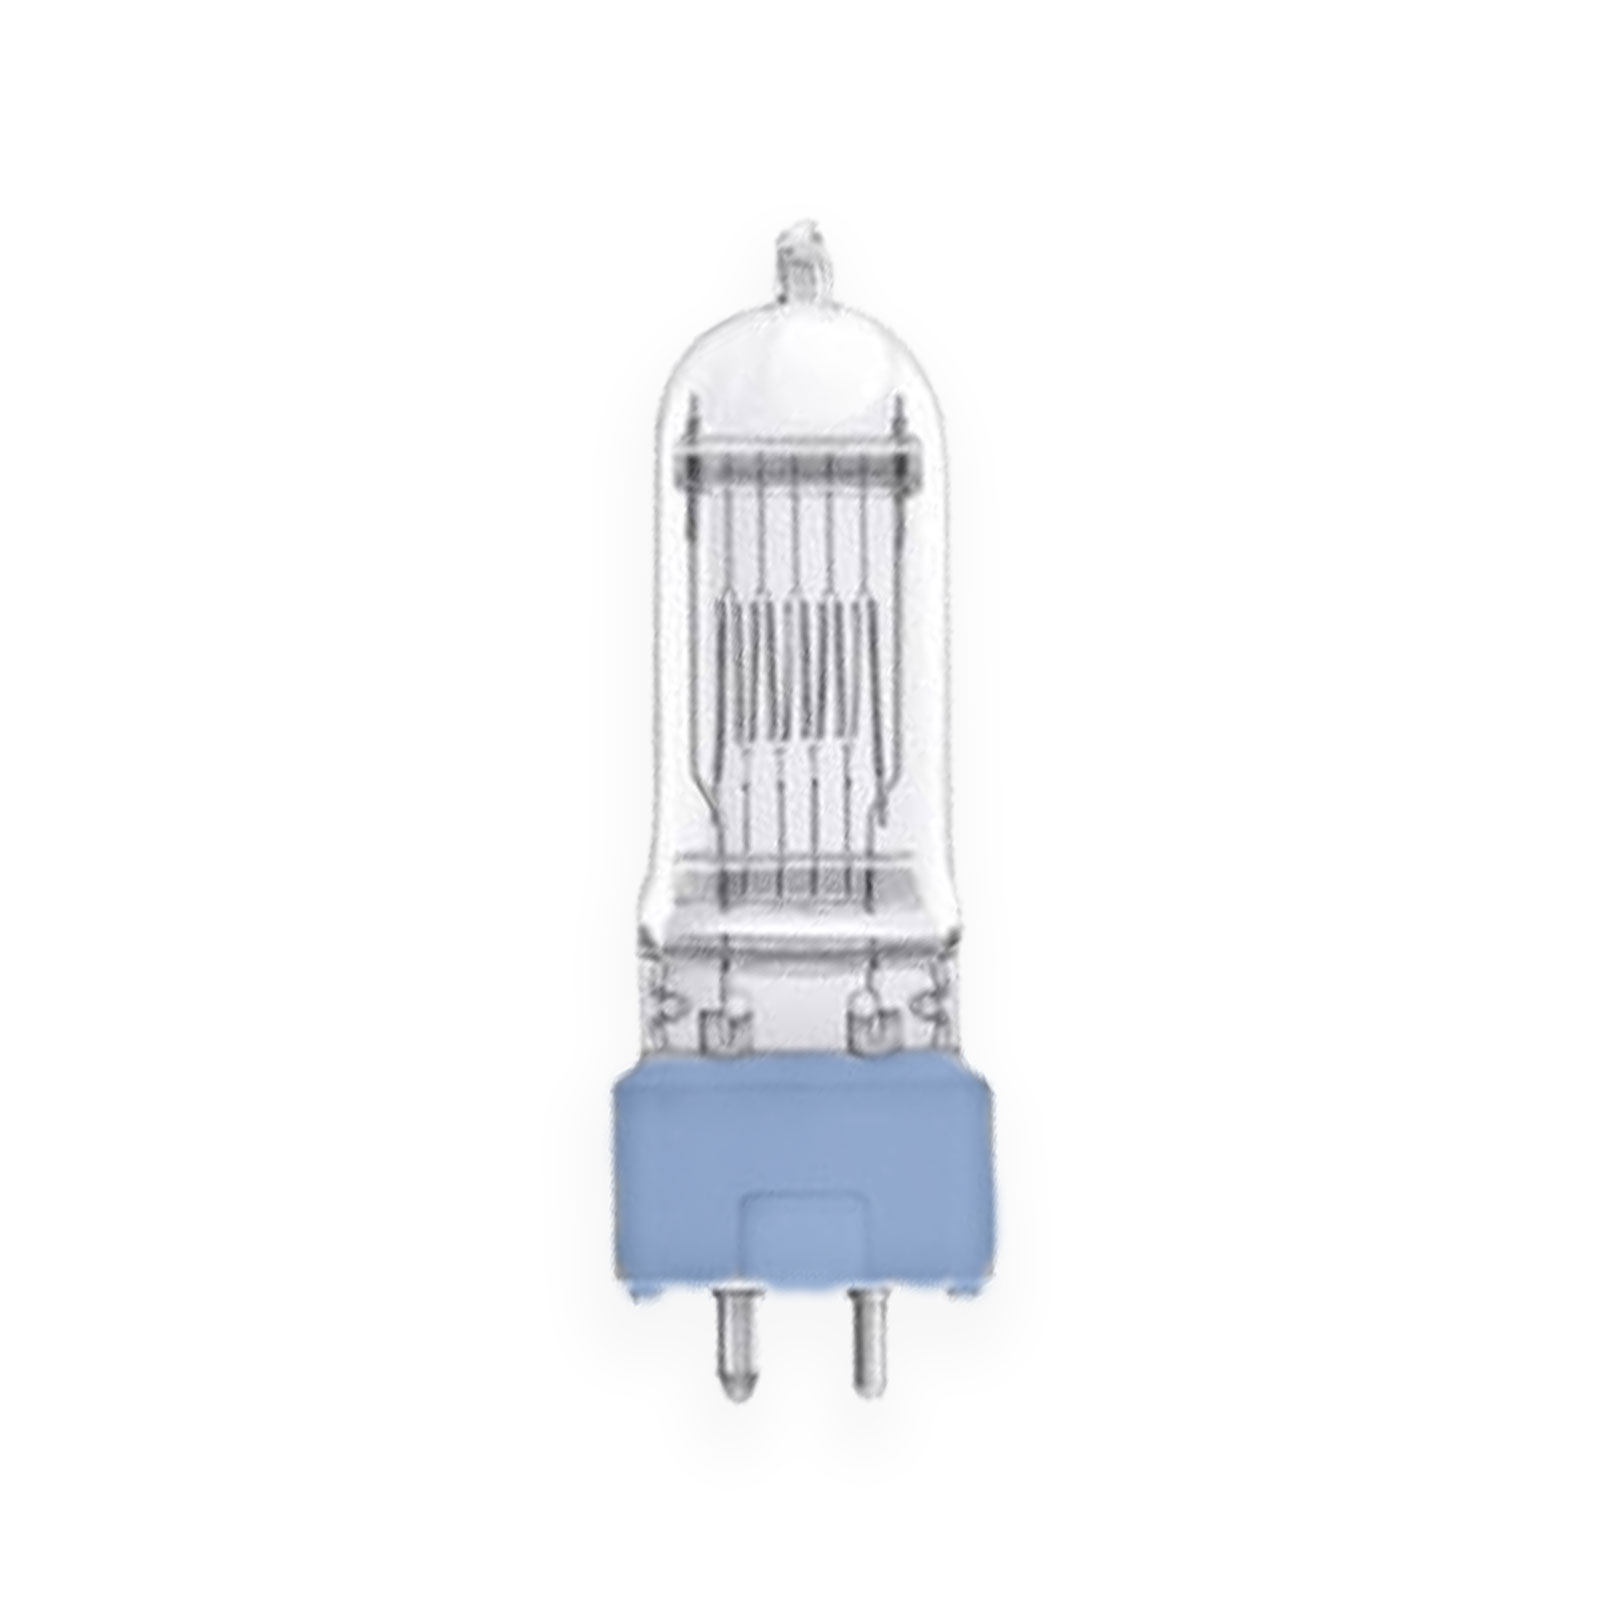 Phillips Bp Blue Pinch Gad 240v W Replacement Lamp